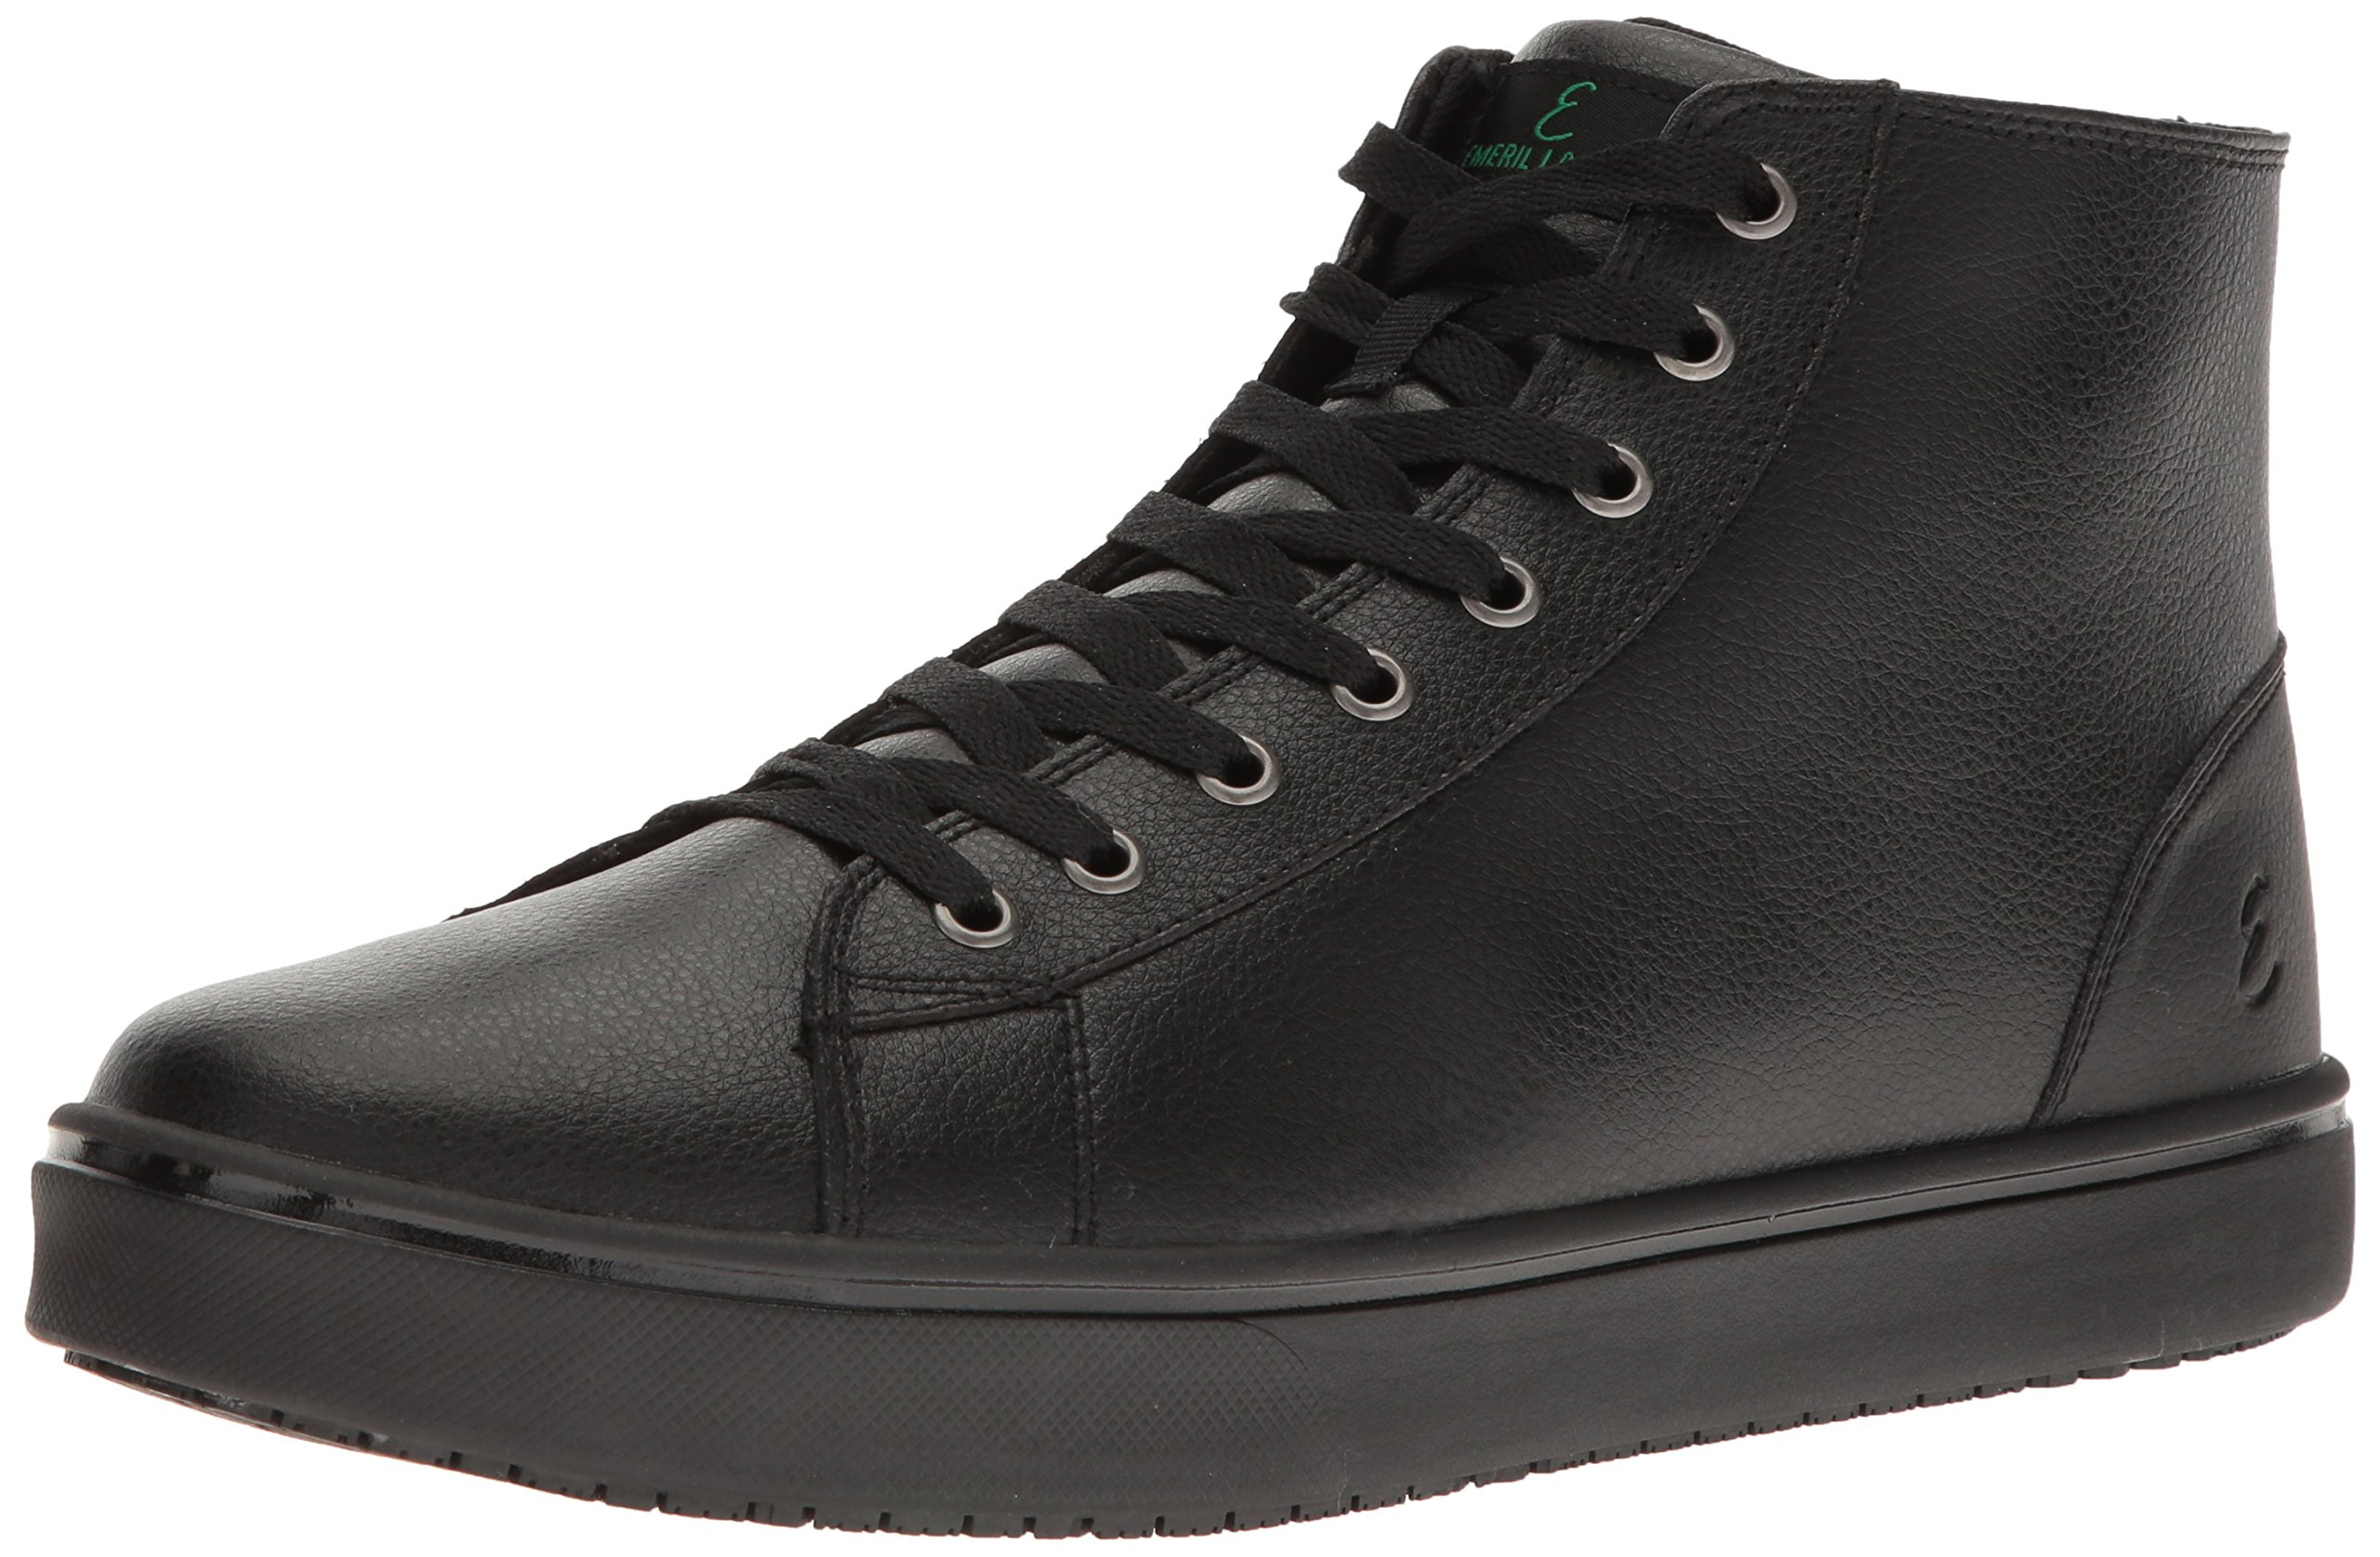 Emeril Lagasse Men's Read  Slip-Resistant Shoe, Black, 13 D US by Emeril Lagasse